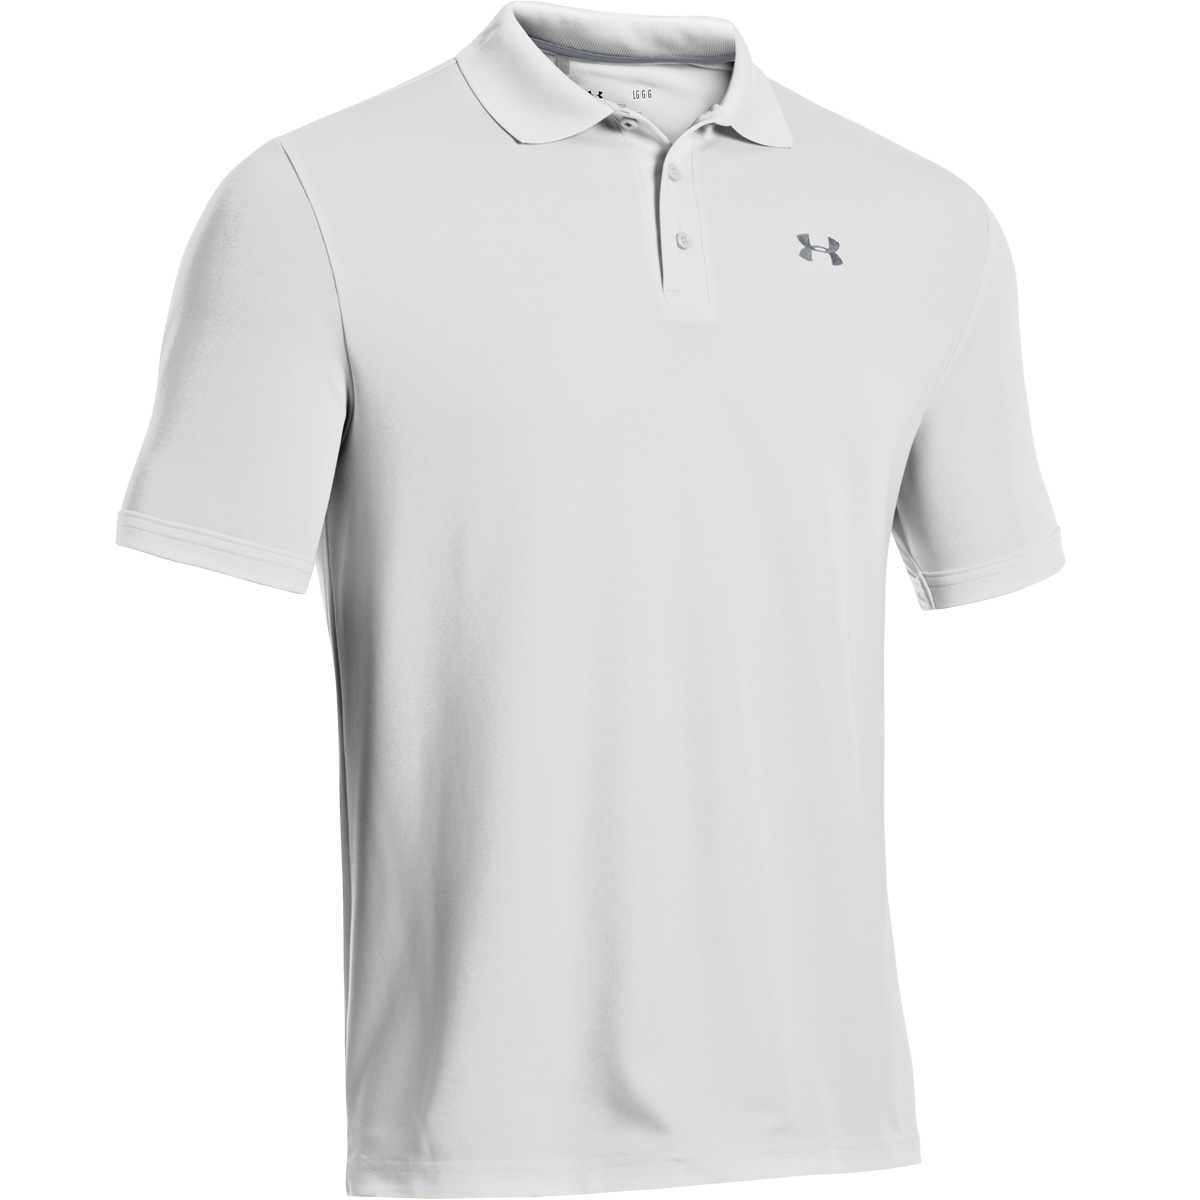 Under Armour Mens Polo Shirt Up To 35 Offfree Shipping For